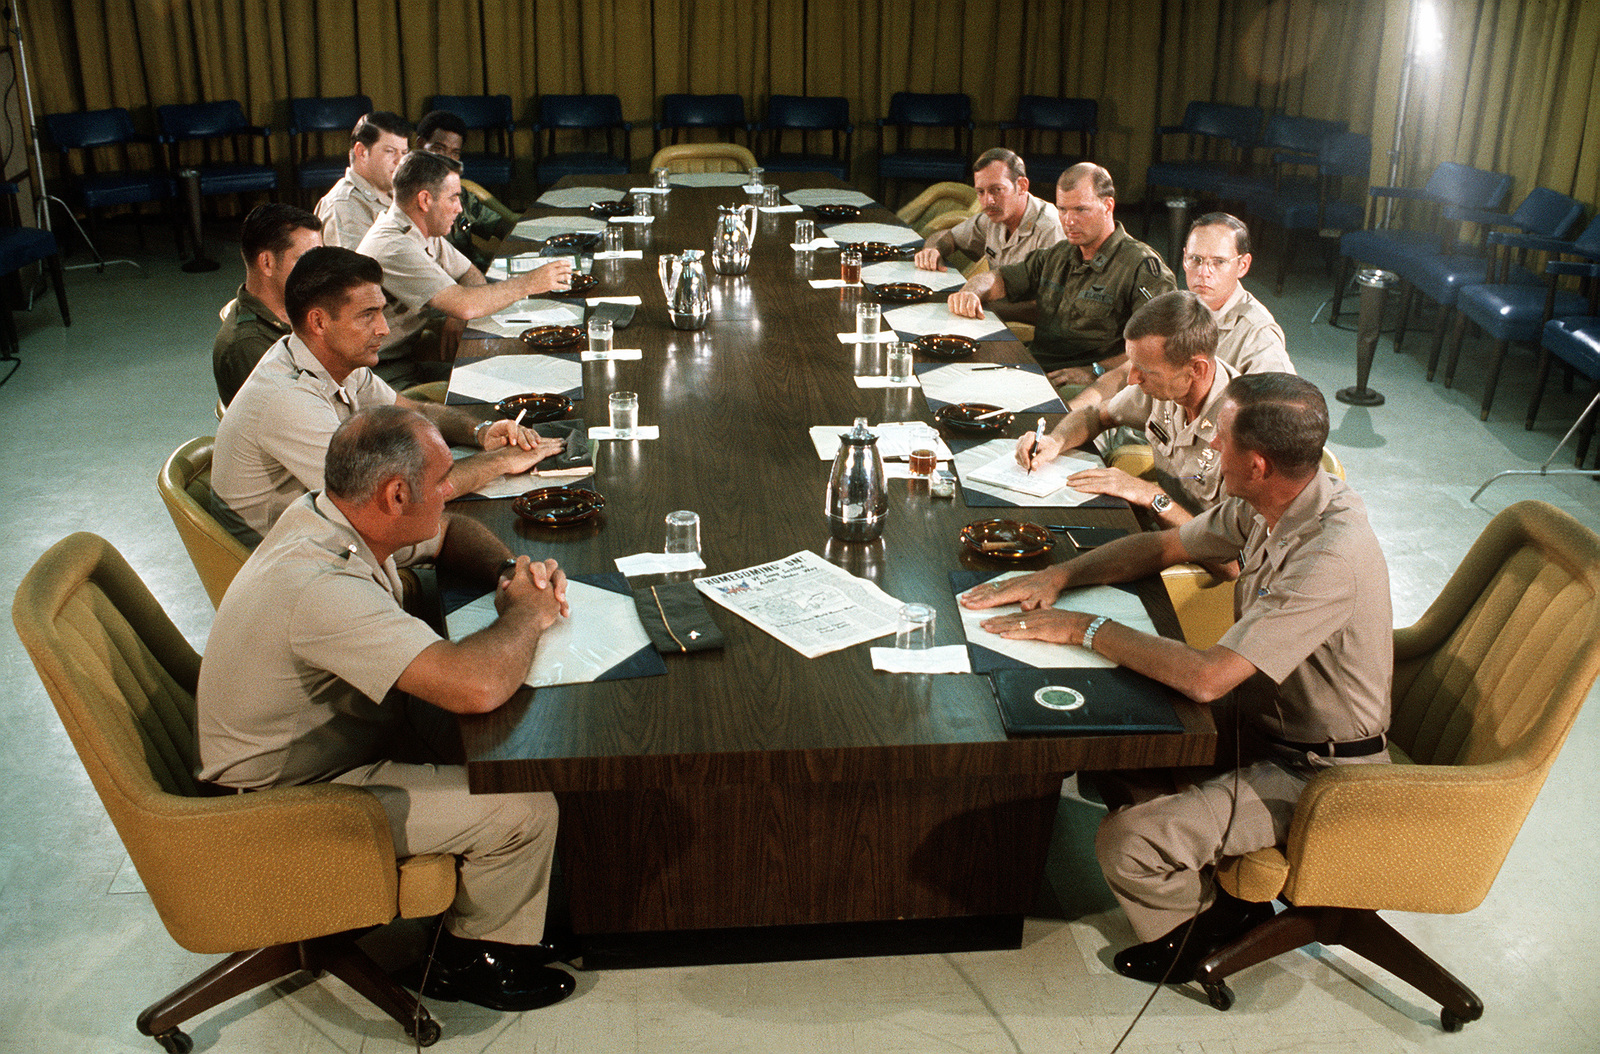 Overall view of Operation Homecoming debriefing held at Military Assistance Command-Vietnam (MACV) on Tan Son Nhut Airbase. The meeting is co-chaired by BGEN McMull and BGEN Stan McClellan, CHIEF of STAFF, Military Assistance Command-Vietnam (MACV) both from U.S. Army